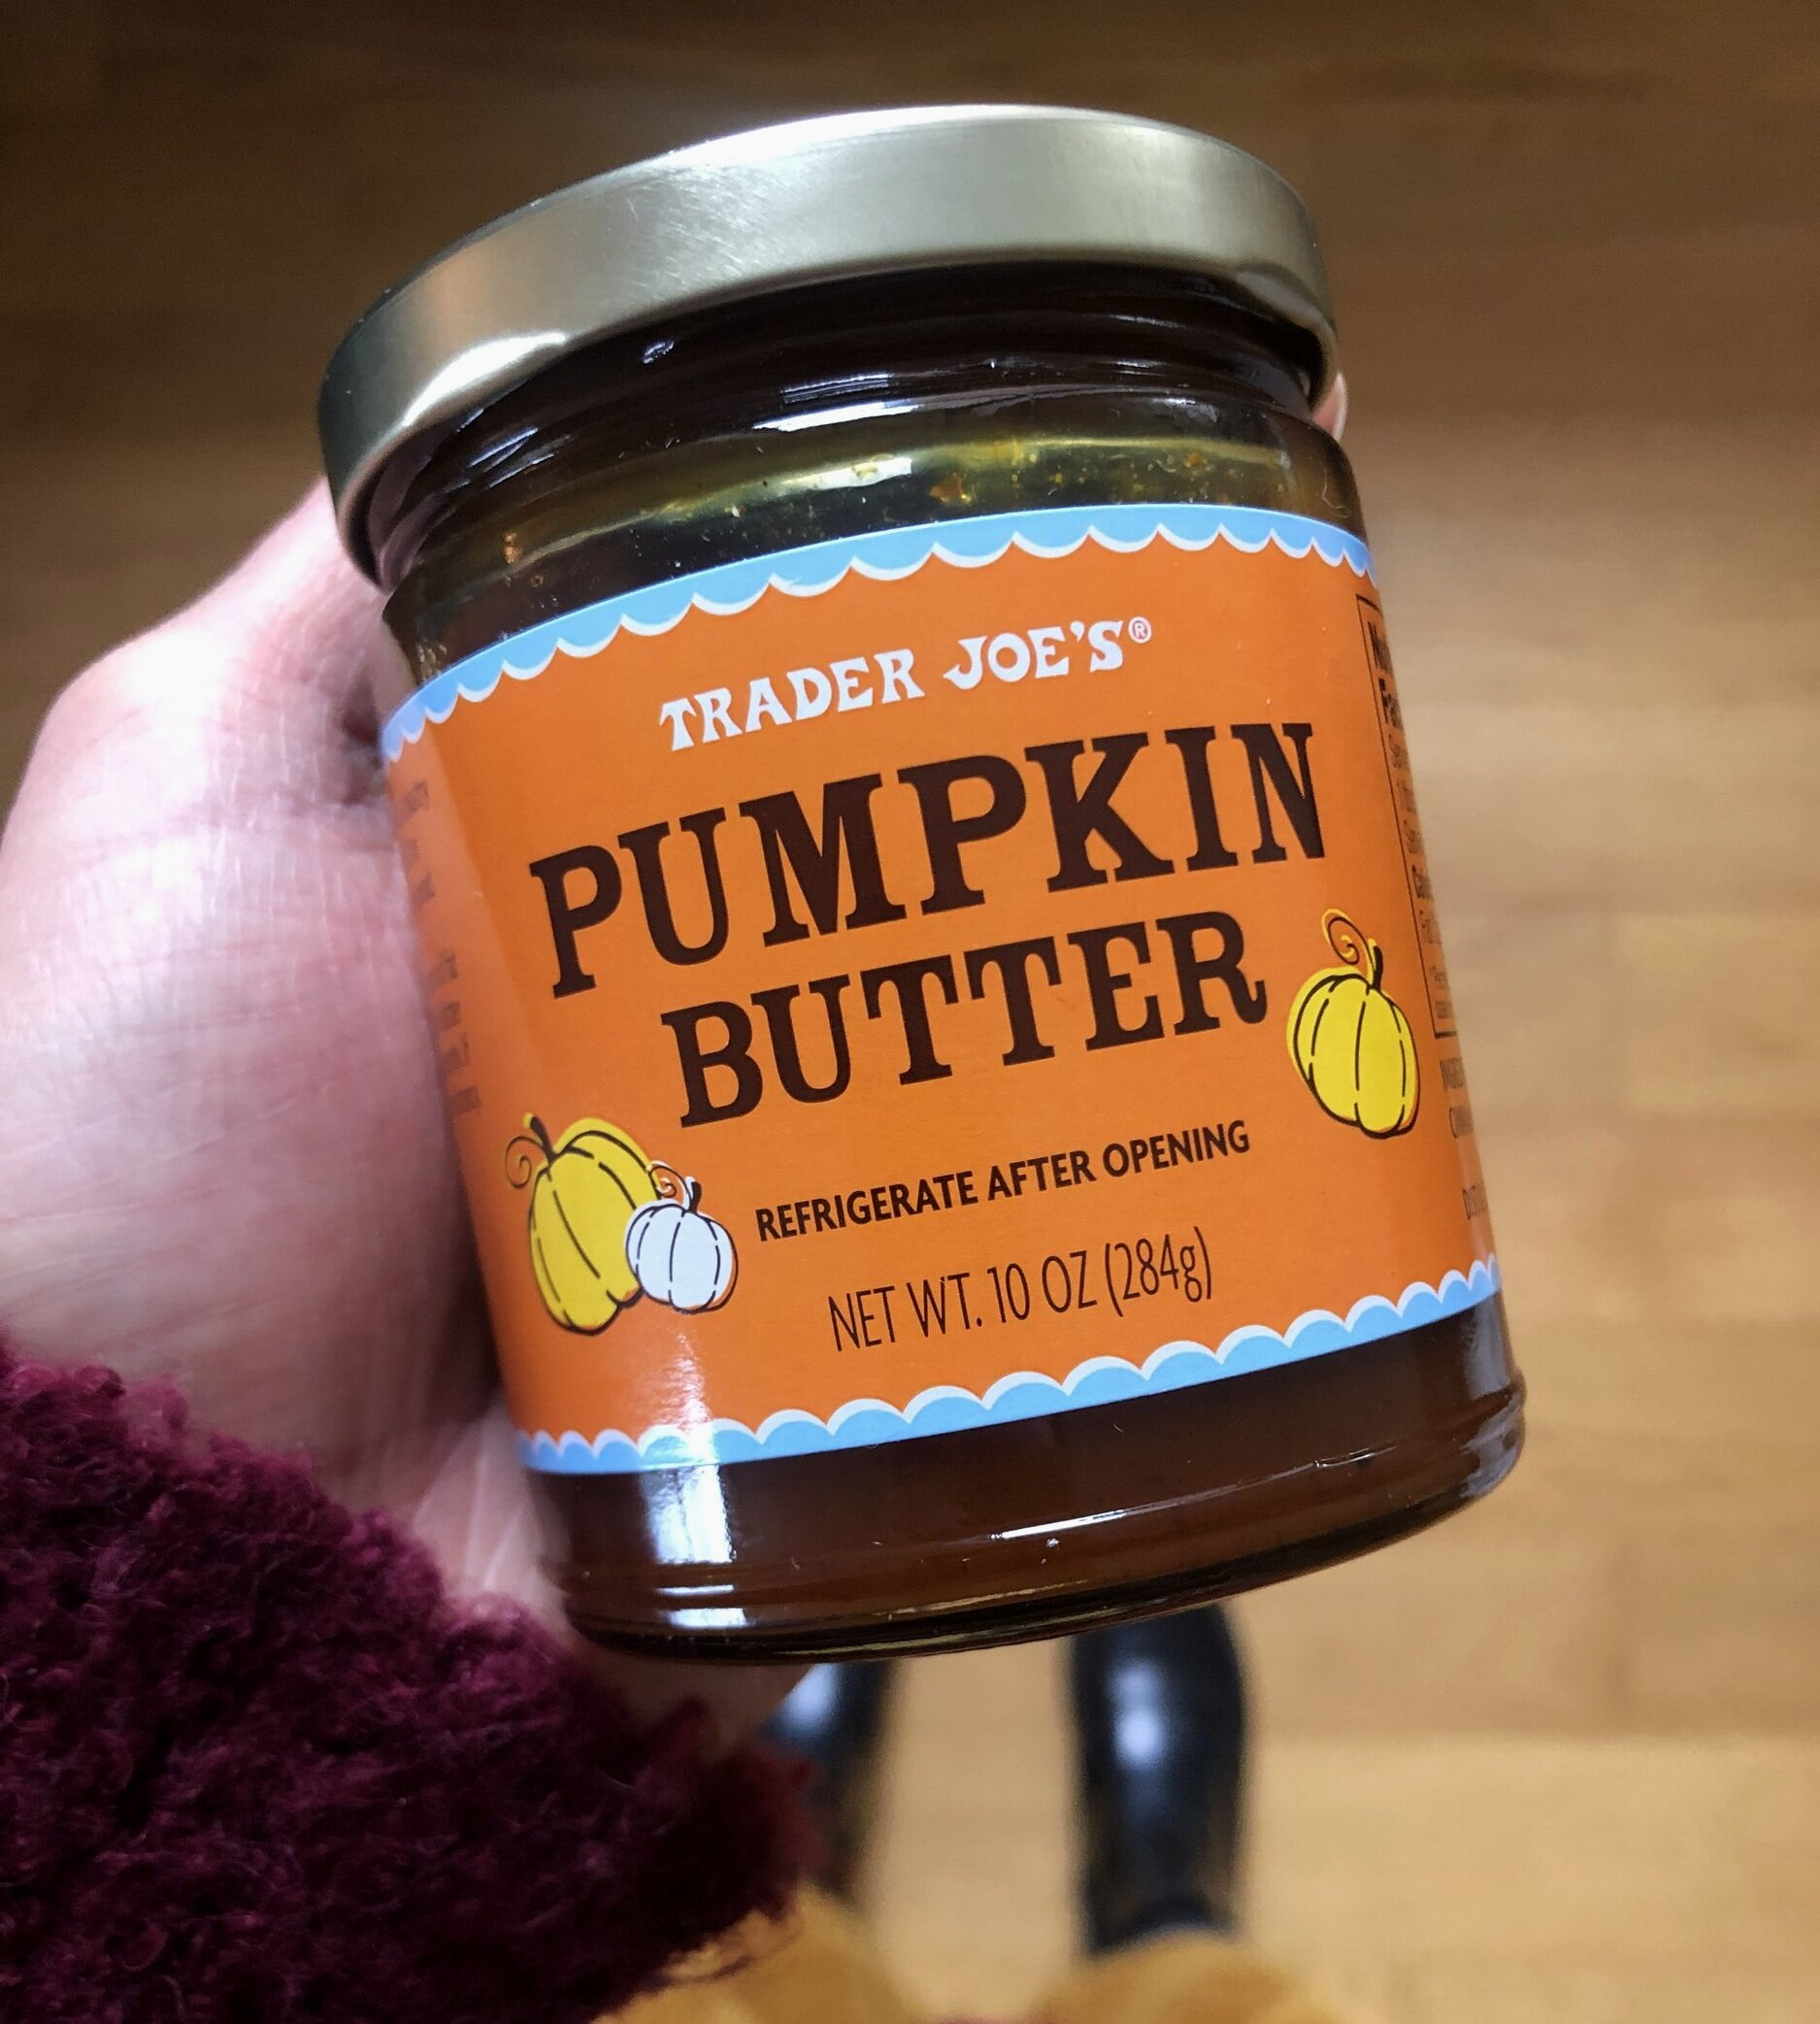 The Trader Joe's Pumpkin Butter. || Photo credit to Serena Tuomi